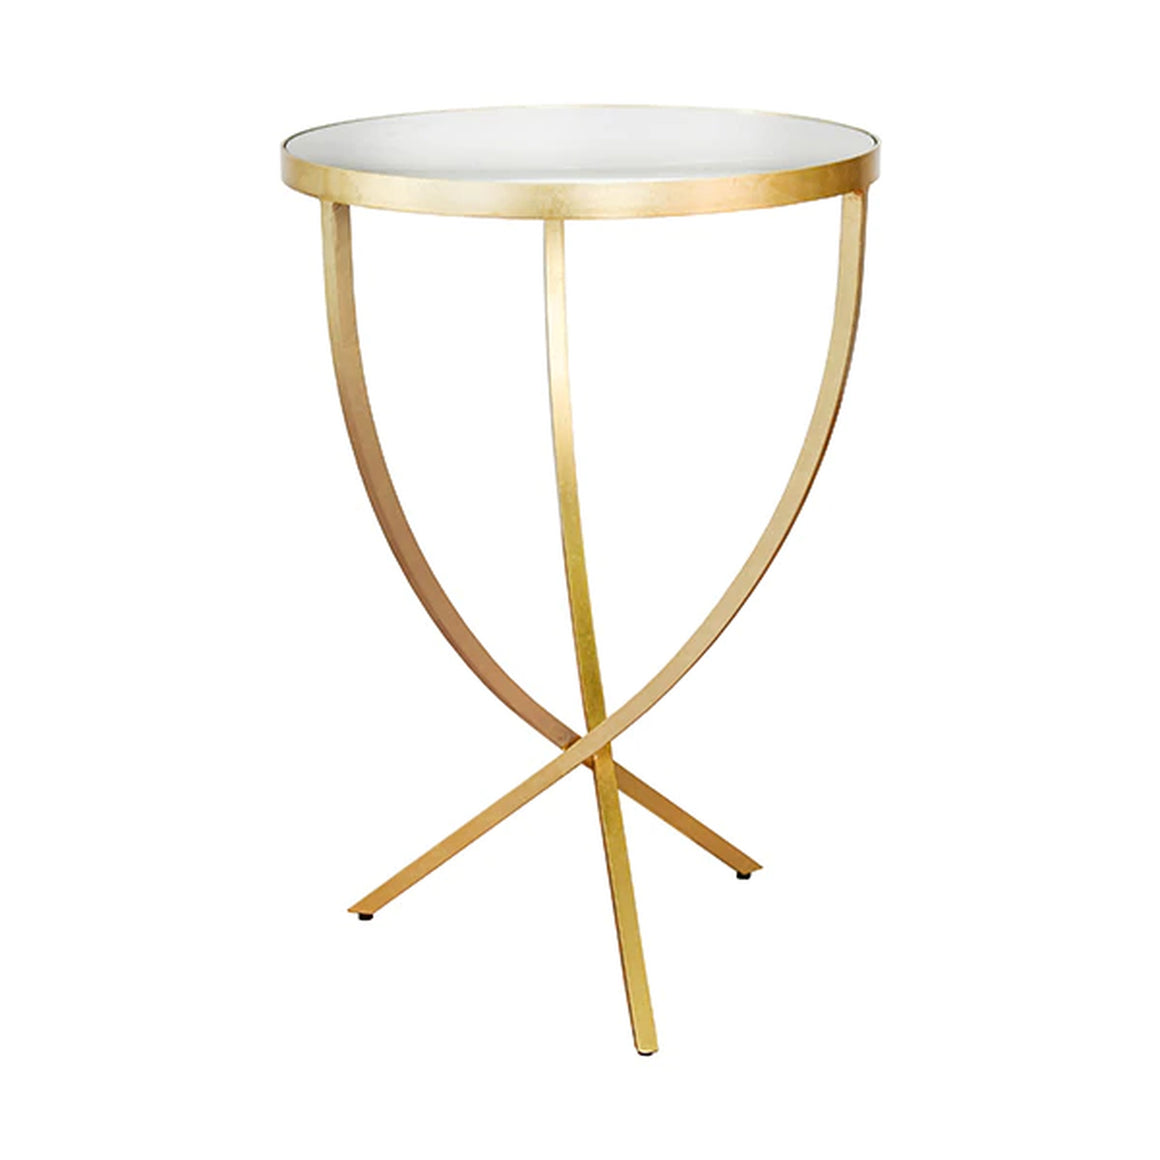 Worlds Away Round Cross Leg Side Table - Gold Leaf